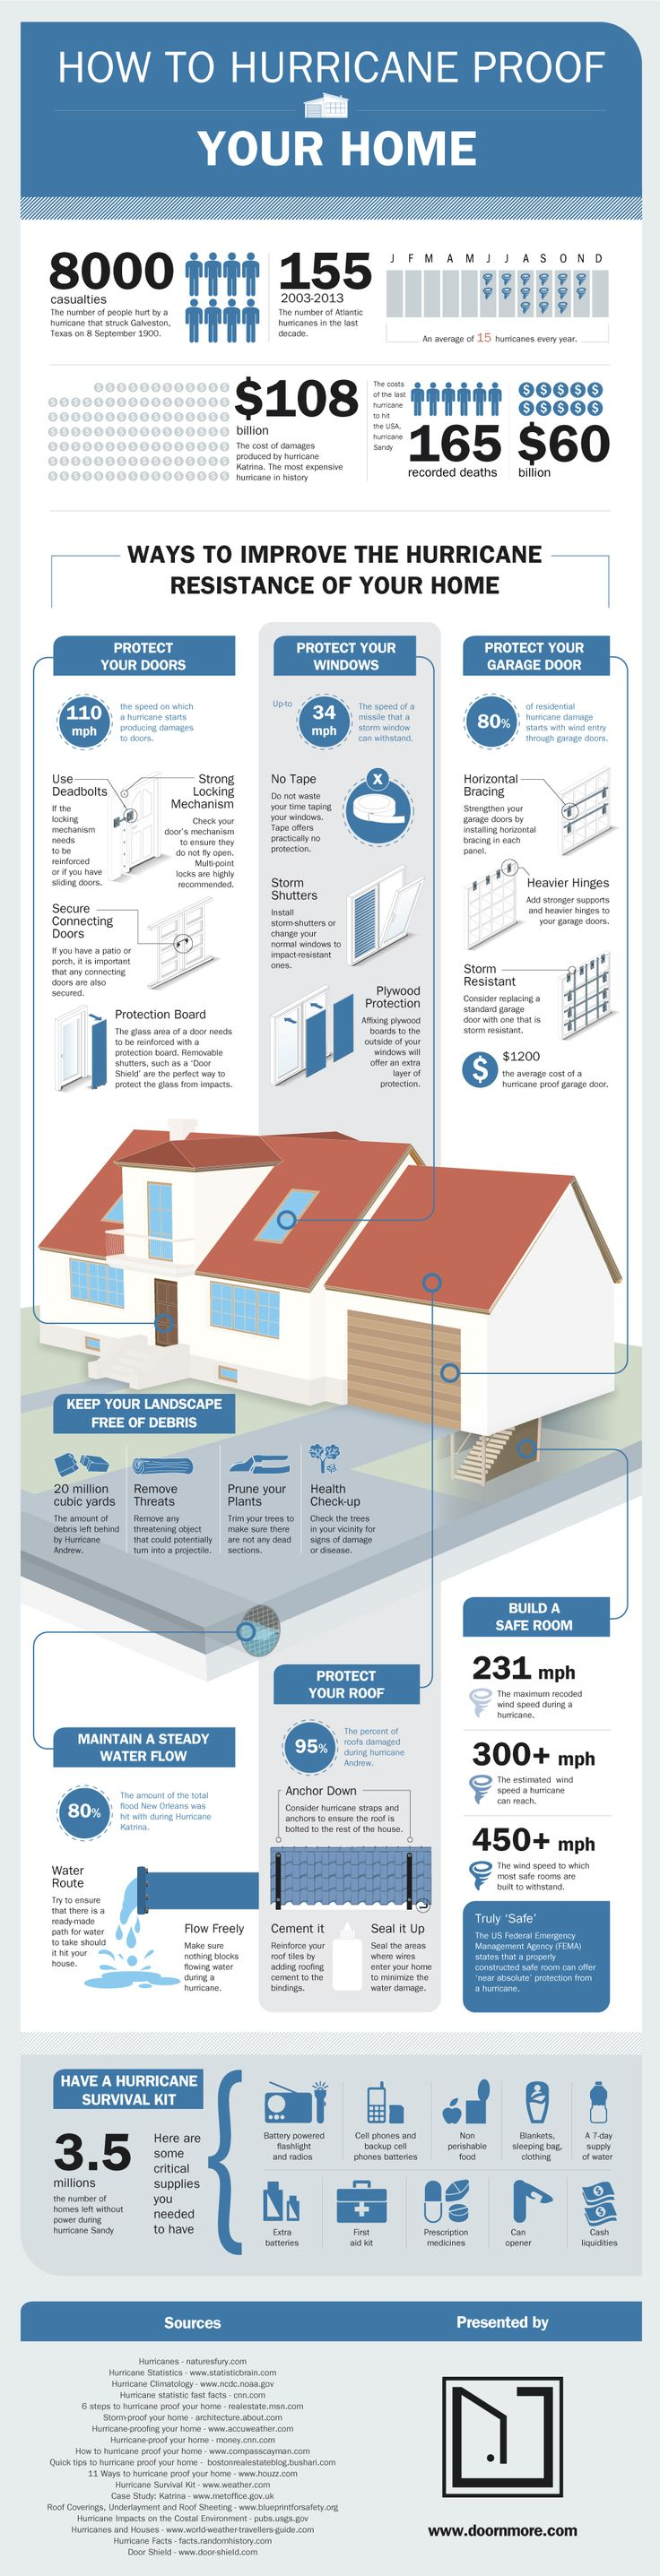 how to hurricane proof your home